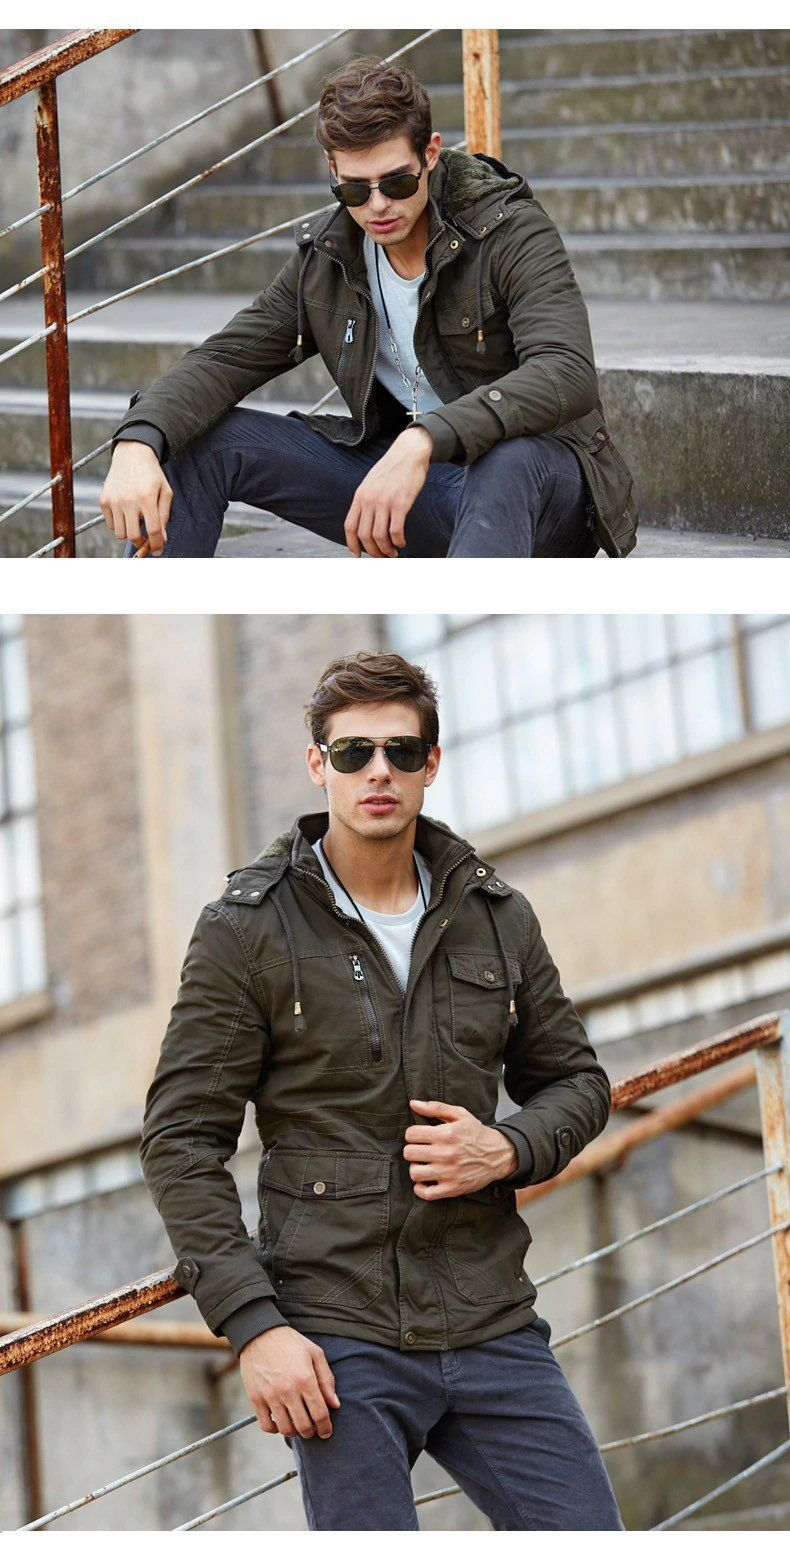 Clothes Winter Jackets Men S Military Style Winter Jacket Hooded Army Style Thick Wool Liner Cott Army Fashion Mens Winter Fashion Mens Military Style Jacket [ 1557 x 790 Pixel ]